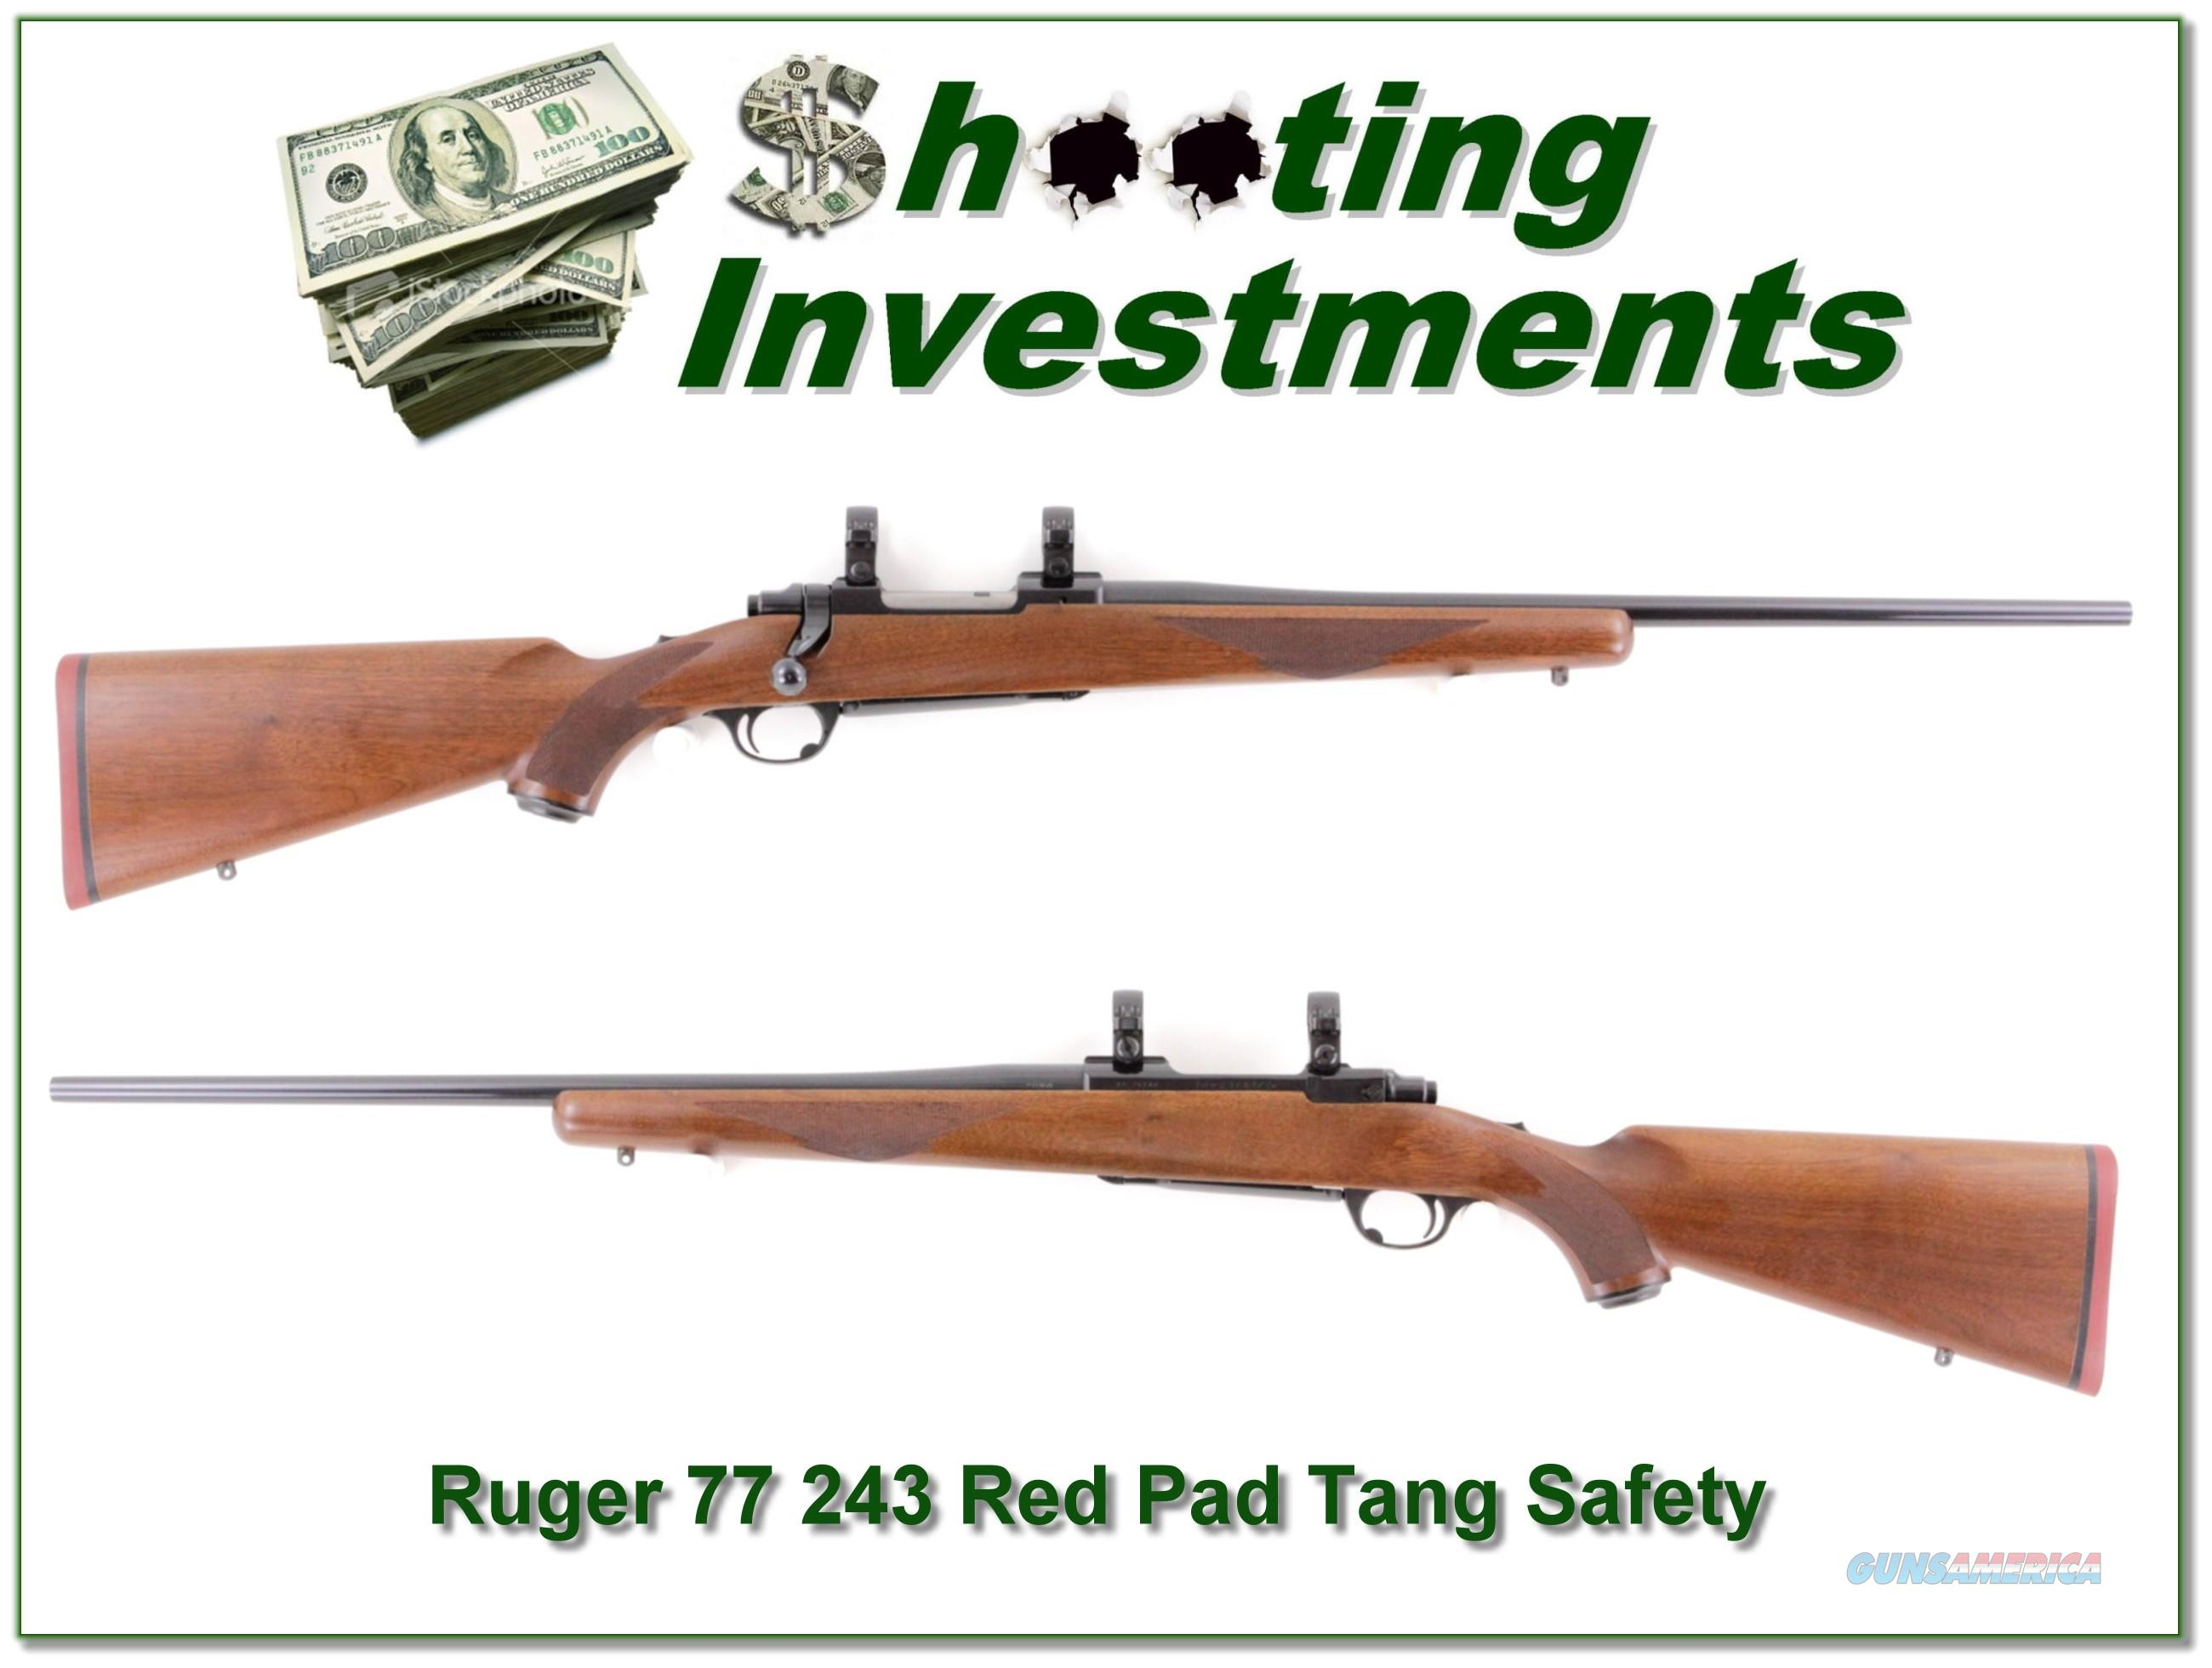 Ruger 77 243 Red Pad Tang Safety as new!  Guns > Rifles > Ruger Rifles > Model 77